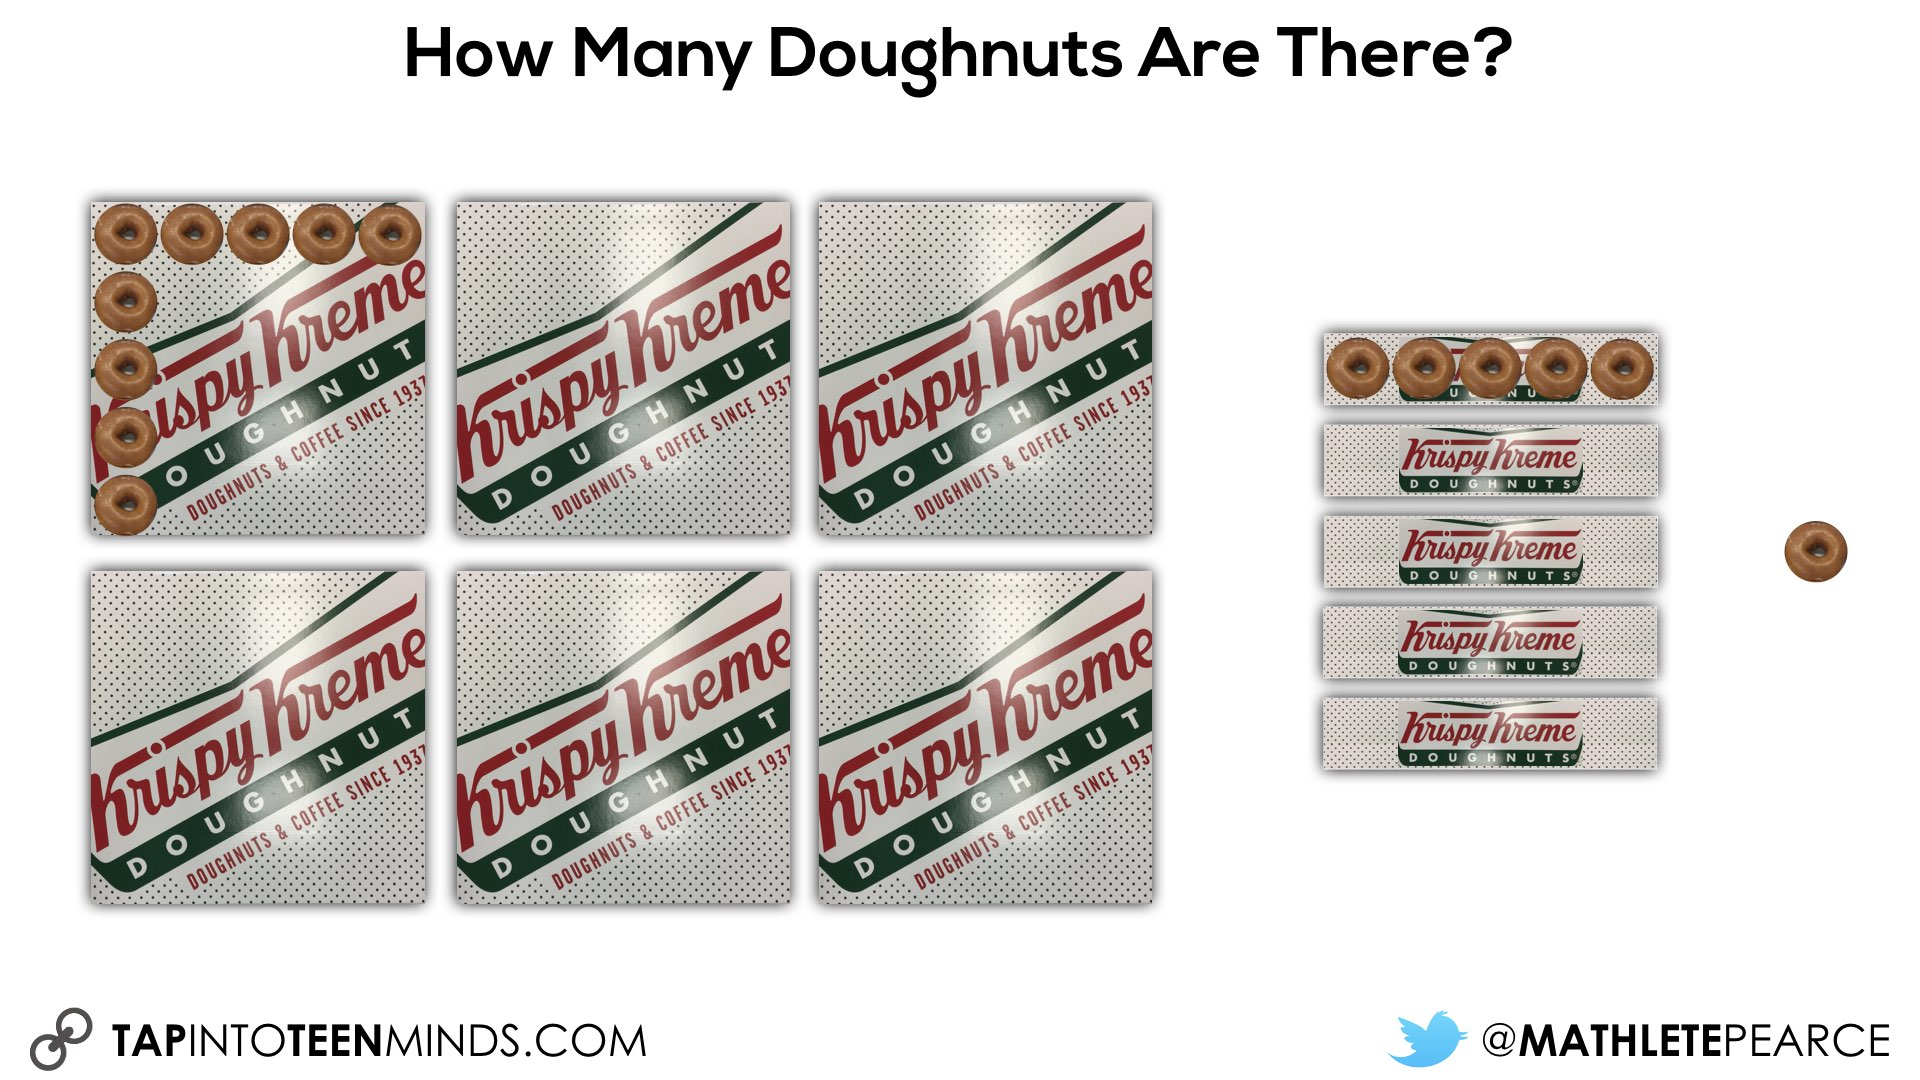 5 doughnuts in each box